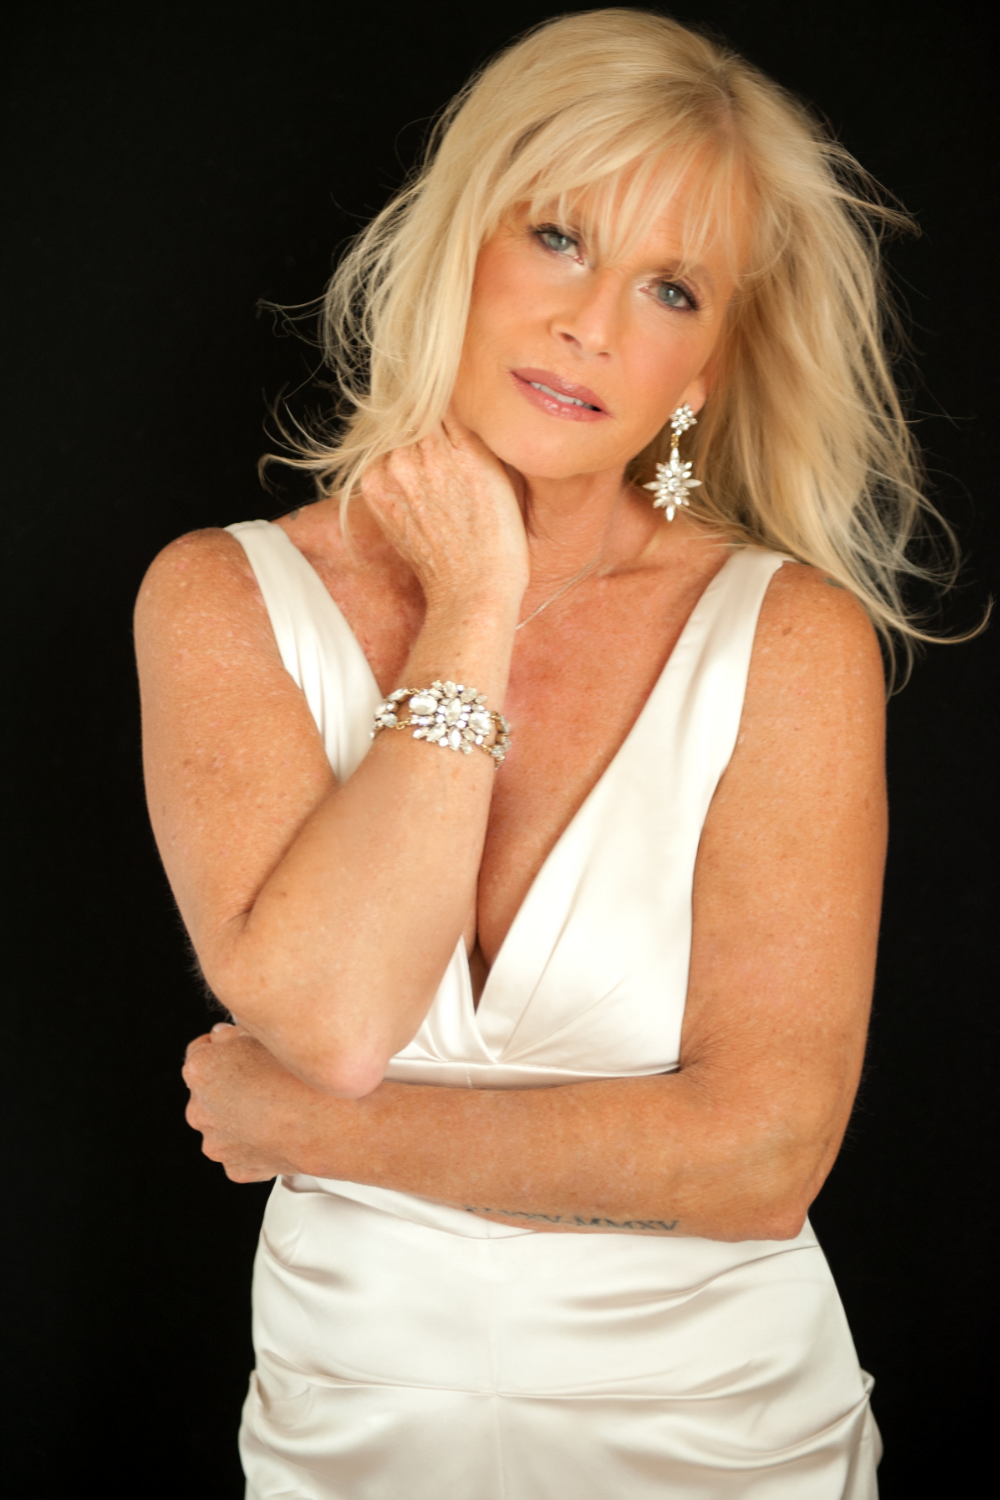 I'm 57 years old and up until now I have never had a photo session like this one. Professional hair and makeup were done first by the lovely Shannon. She kept it light and natural as I requested. Dawn was a darling, posing me in ways to get the best shot. It was a comfortable environment which I embraced, feeling like a glamorous woman. The hardest part of it was trying to choose from all the photos. I loved them all. I would recommend this for any woman as a gift or just to pamper and treat yourself... No matter what your age. I plan on going back for my 60th. Thank you ladies. It was a remarkable experience.